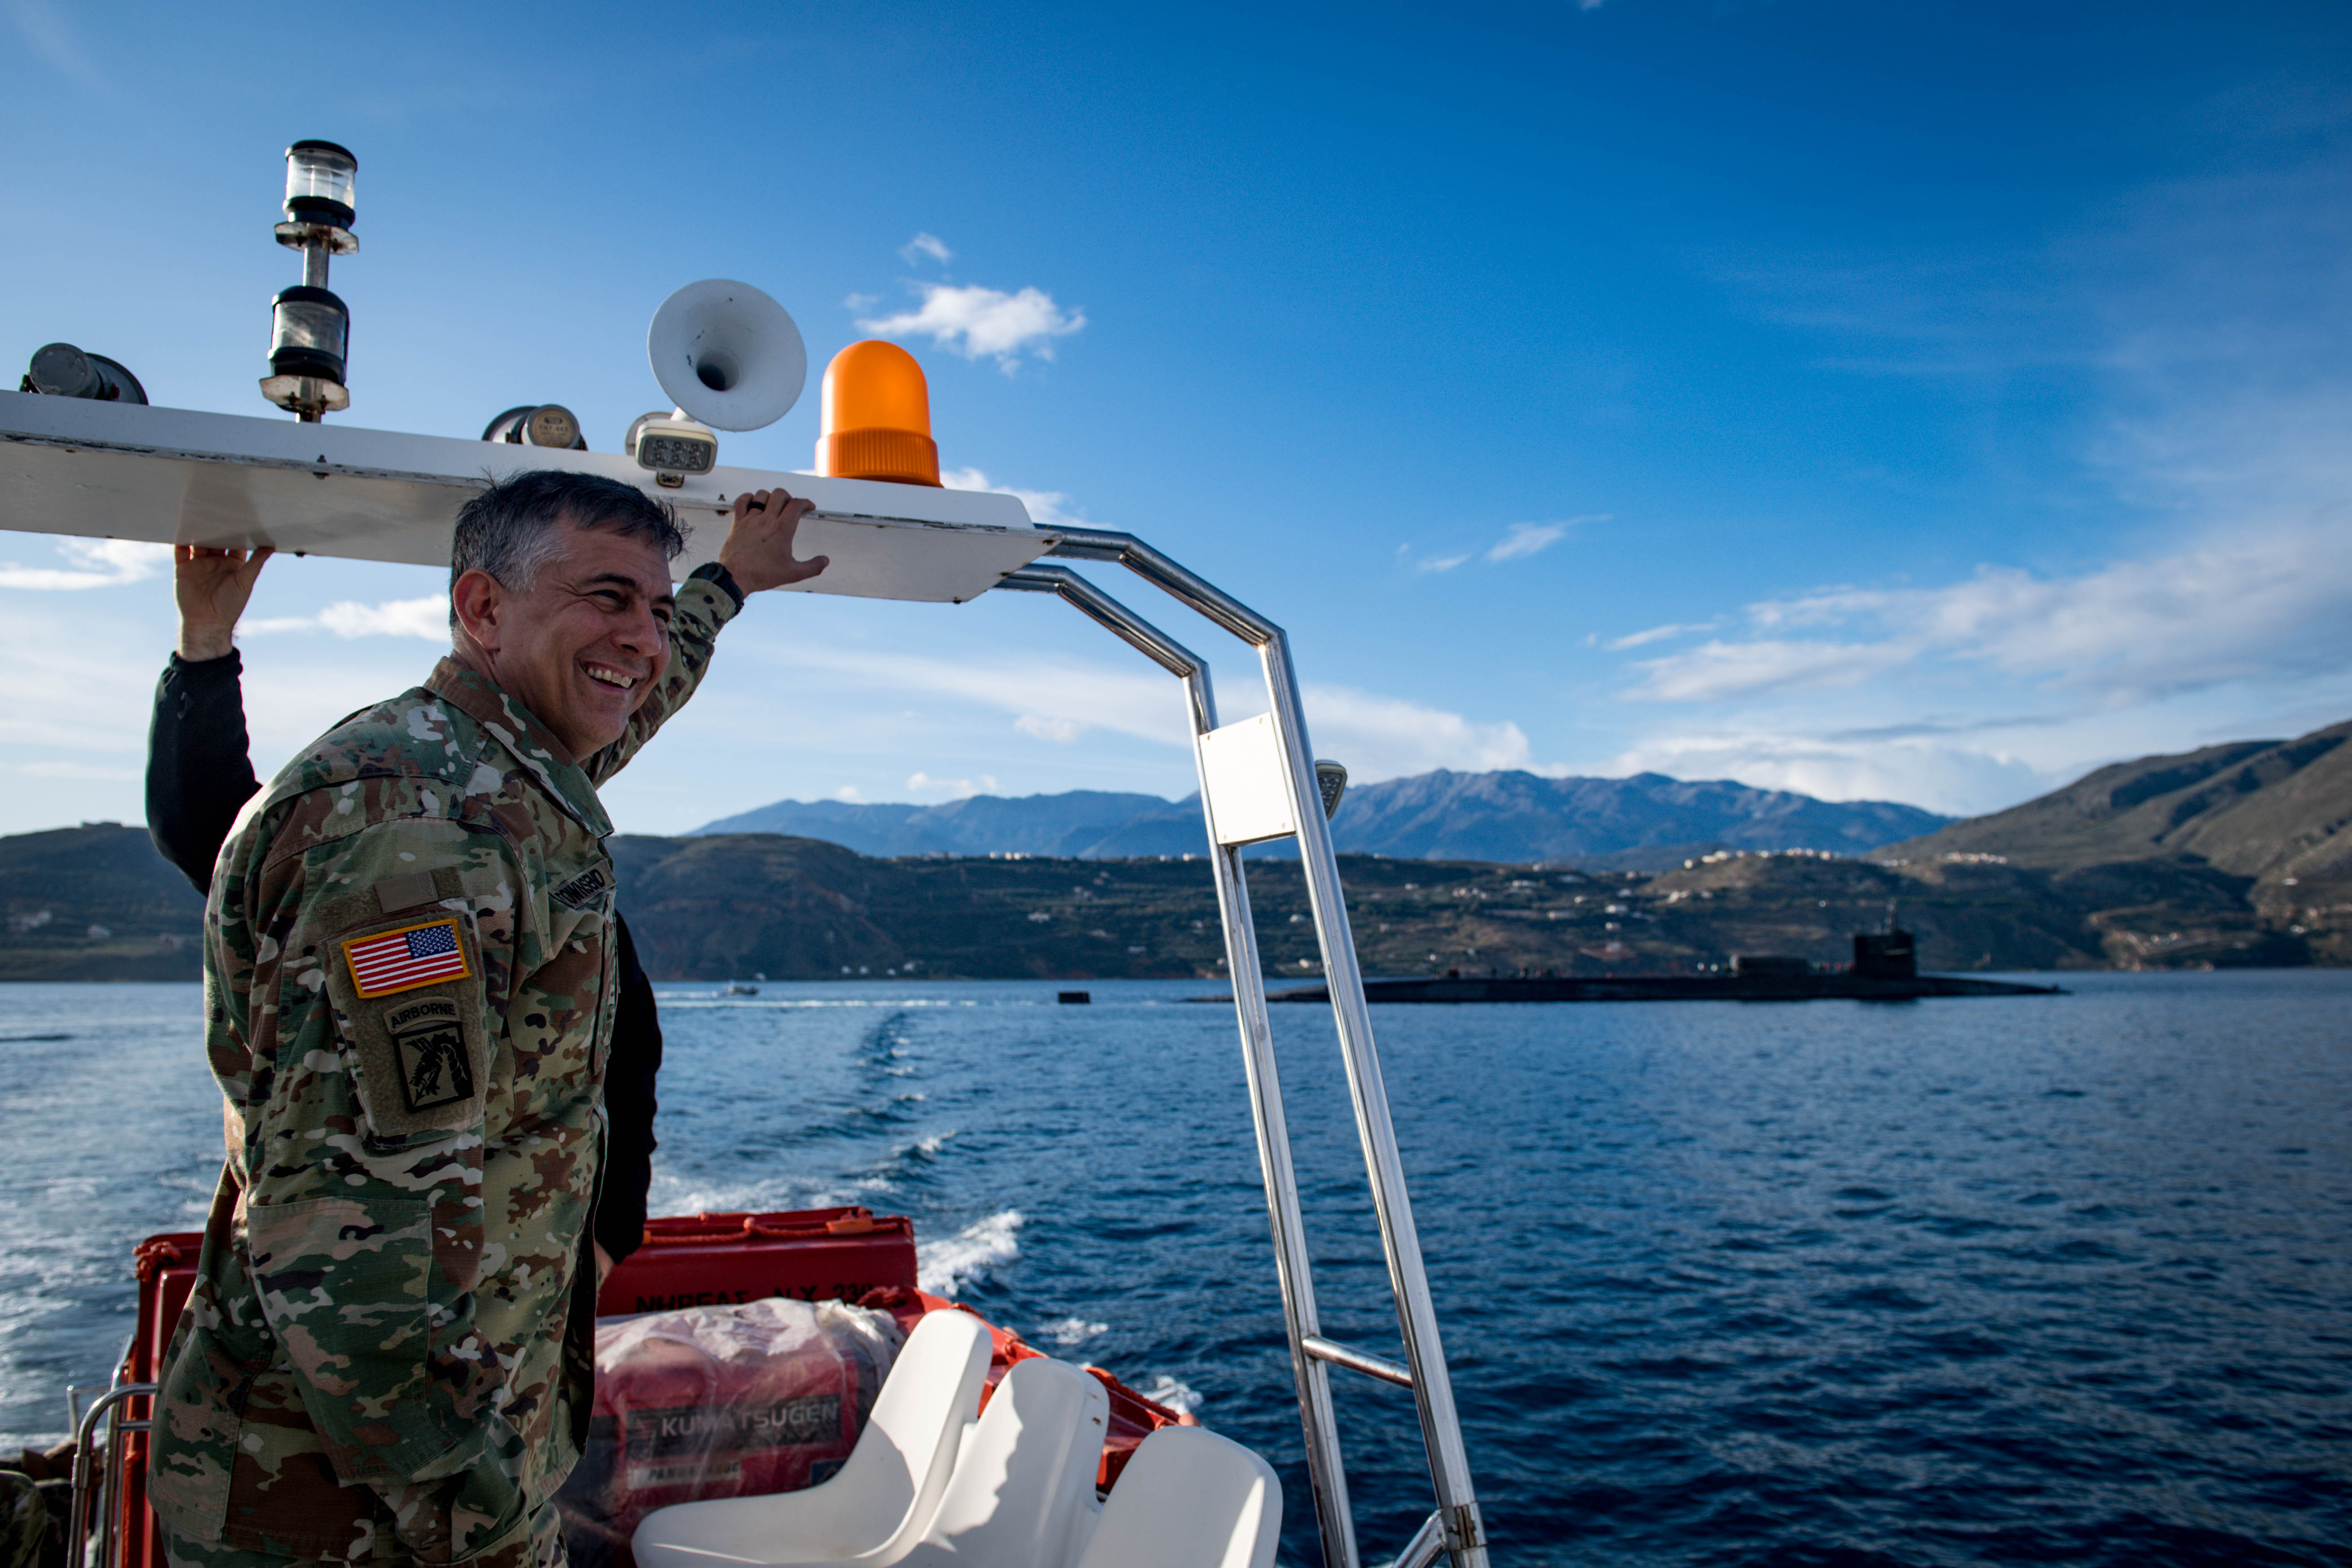 U.S. Army Gen. Stephen J. Townsend, commander, U.S. Africa Command (AFRICOM), stands on a transfer boat after departing the Ohio-class fleet guided-missile submarine USS Florida (SSGN 728), in Naval Support Activity Souda Bay, Greece, Nov. 26, 2019. AFRICOM, a full-spectrum combatant command, is one of the six U.S. Defense Department's geographic combatant commands and is responsible for all DoD operations, exercises, and security cooperation on the African continent, its island nations, and surrounding waters. (U.S. Navy photo by Mass Communication Specialist 2nd Class Jonathan Nelson)